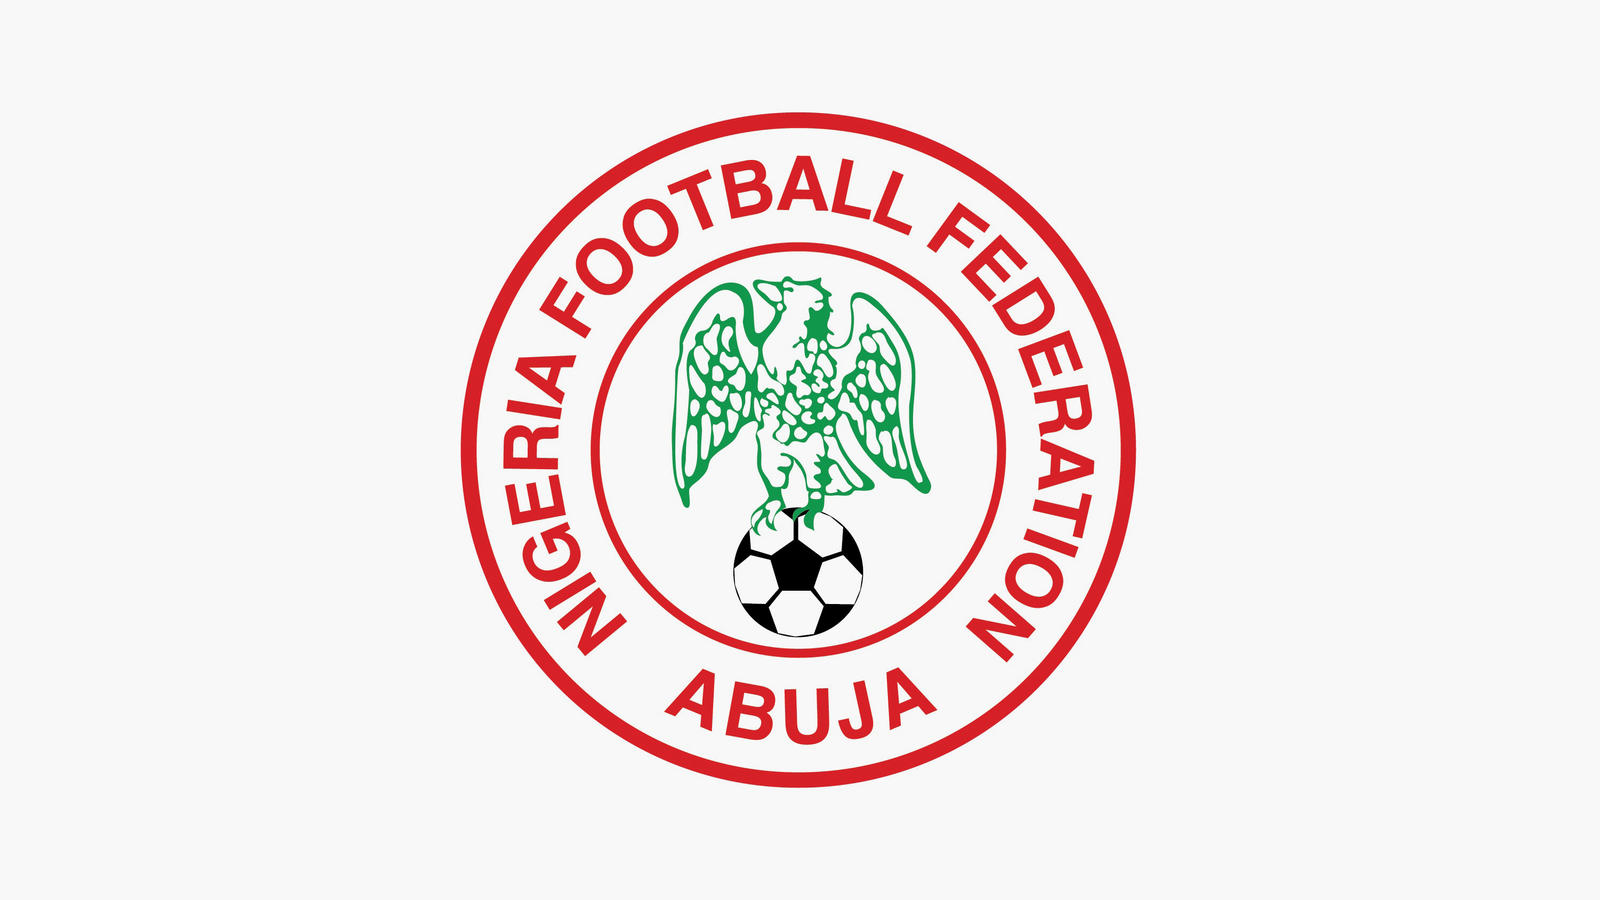 NFF scraps match bonuses for U17, U20, U23 teams